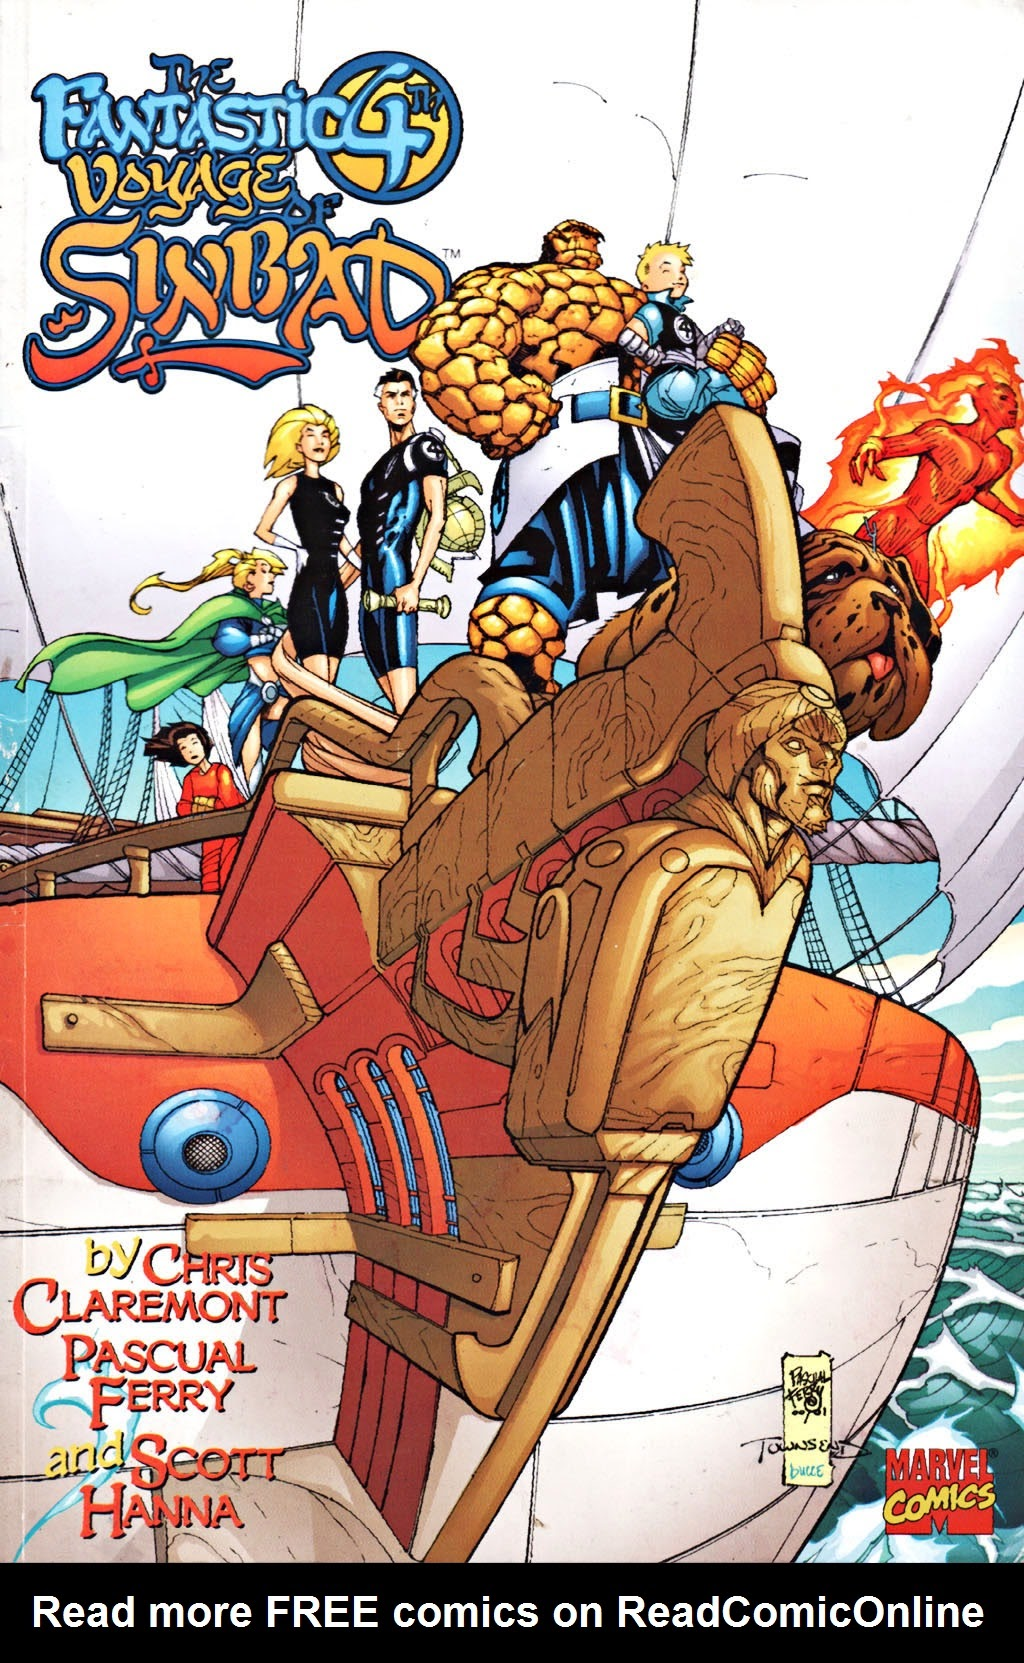 Fantastic Four: The Fantastic 4th Voyage of Sinbad Full Page 1